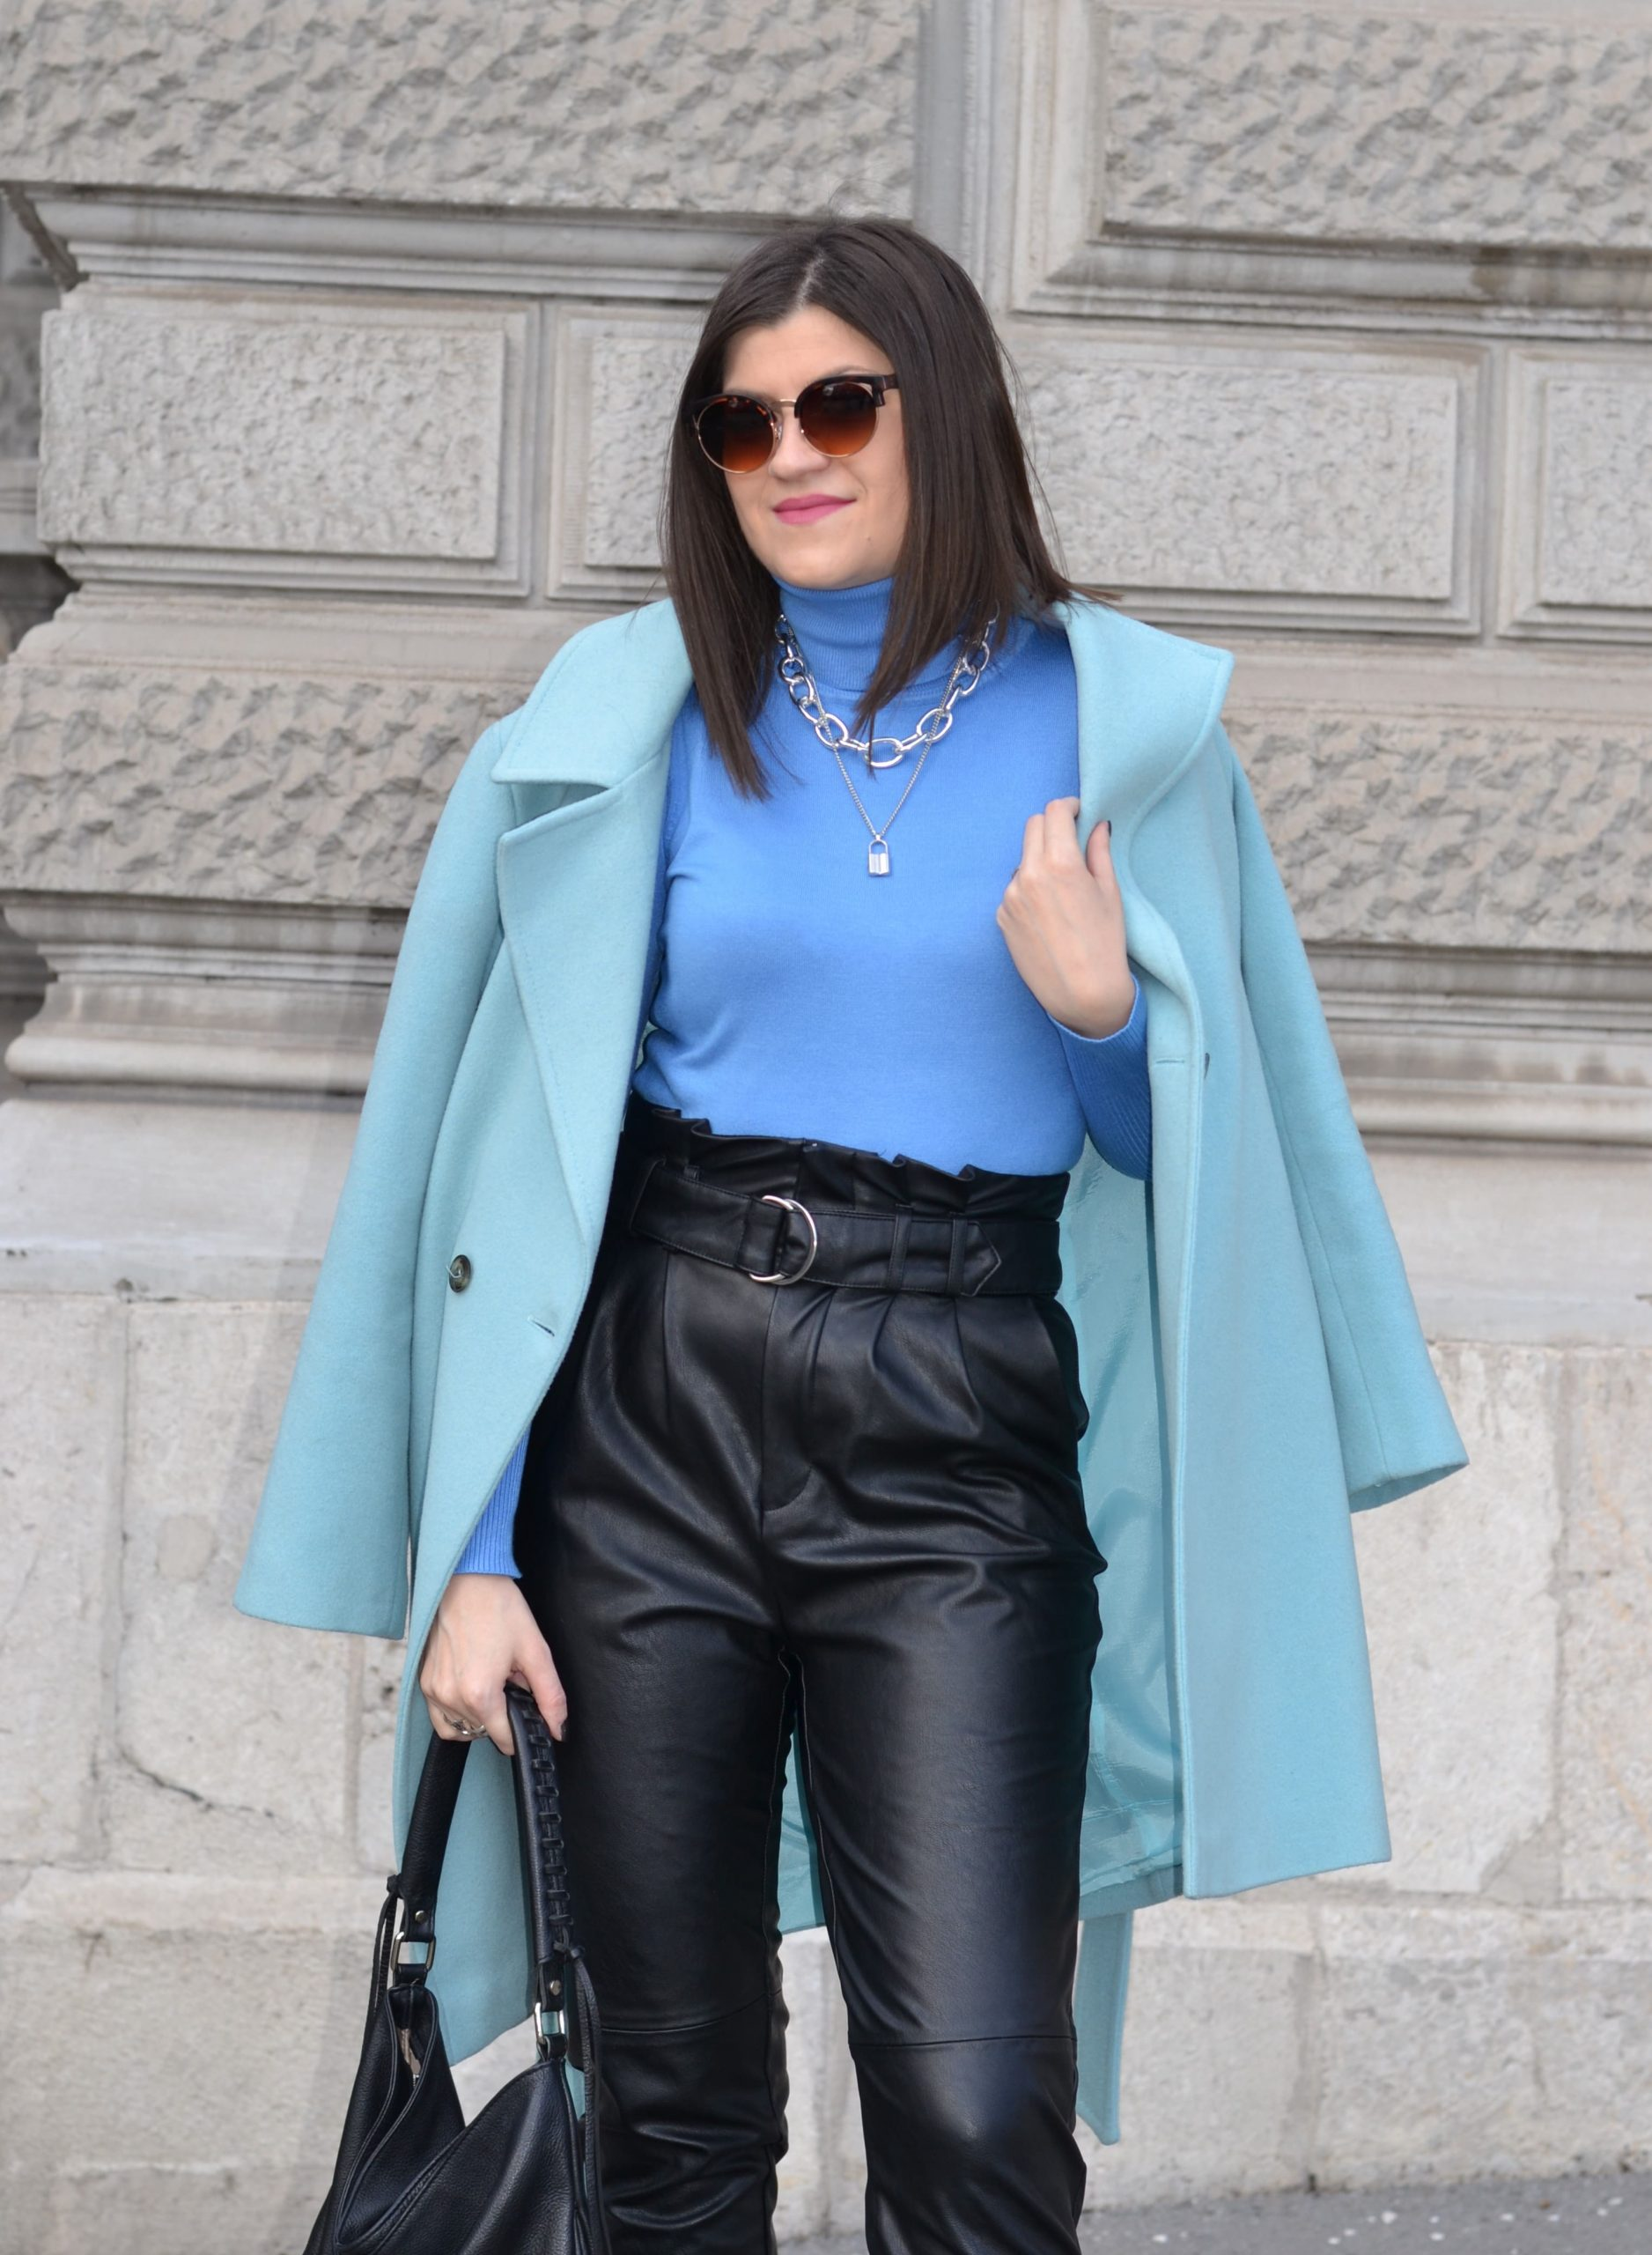 Spring Blue Outfit Idea